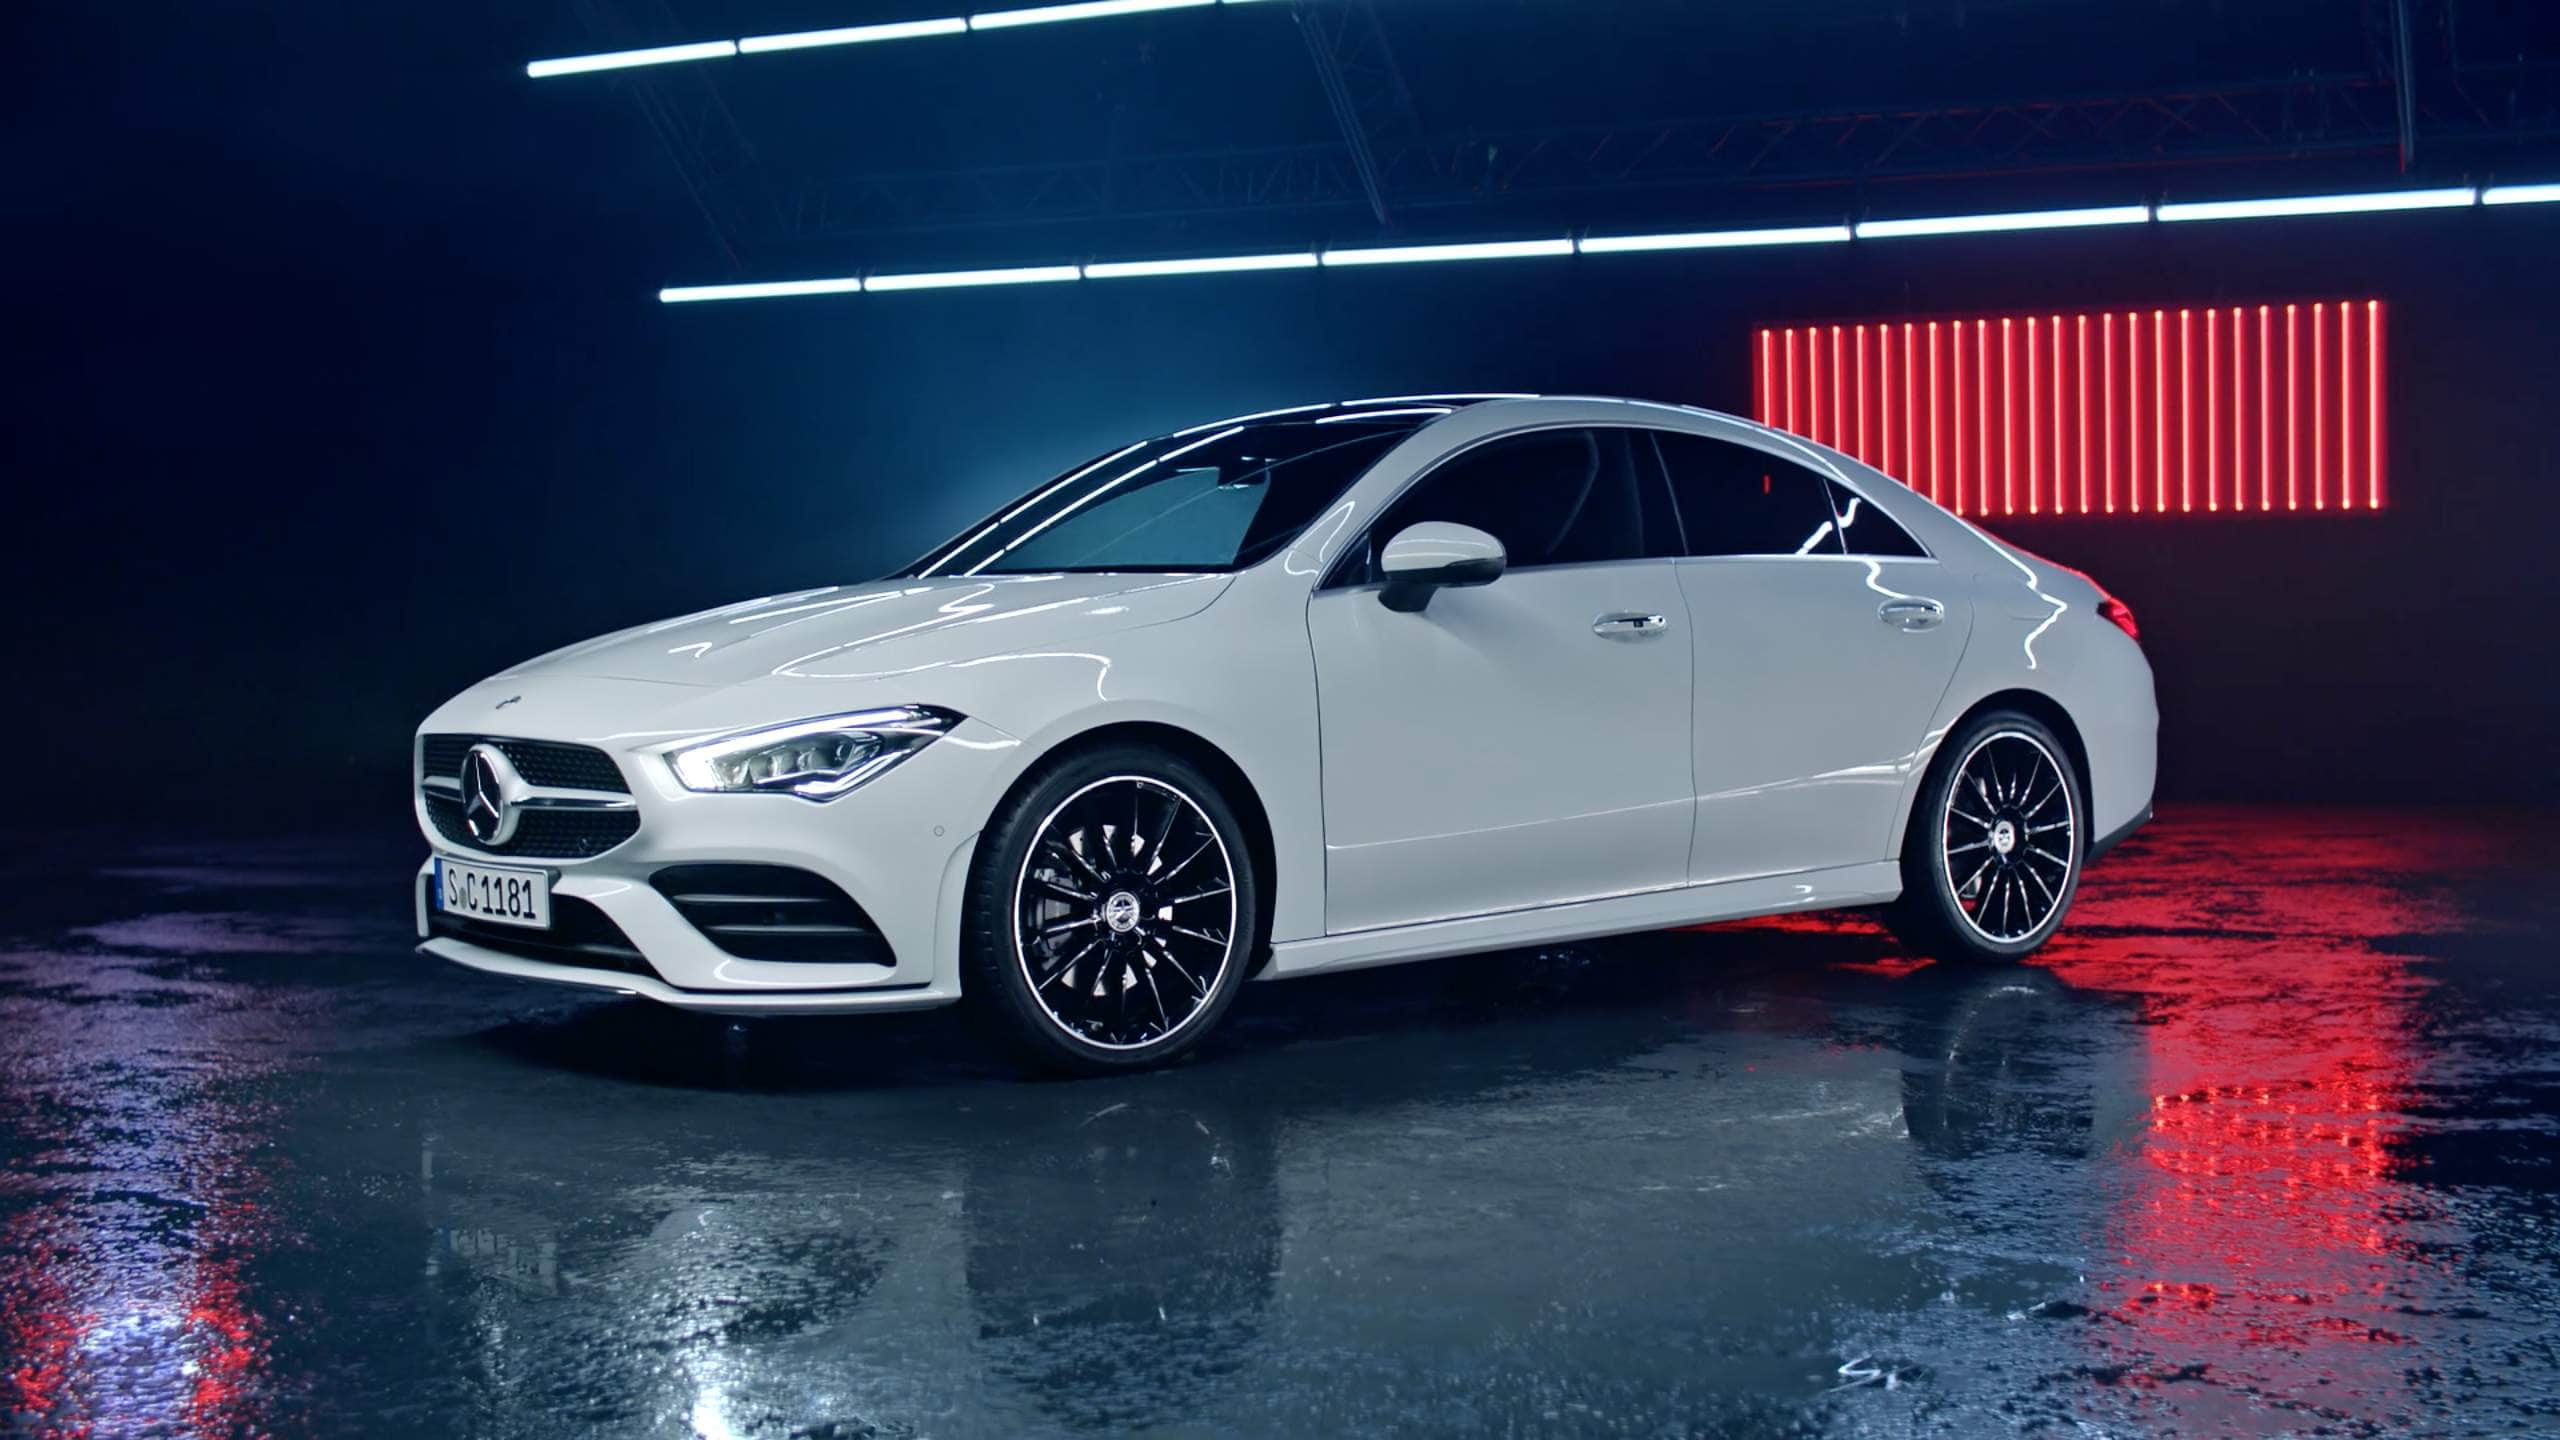 Автомобиль Mercedes-Benz CLA Coupe вид спереду